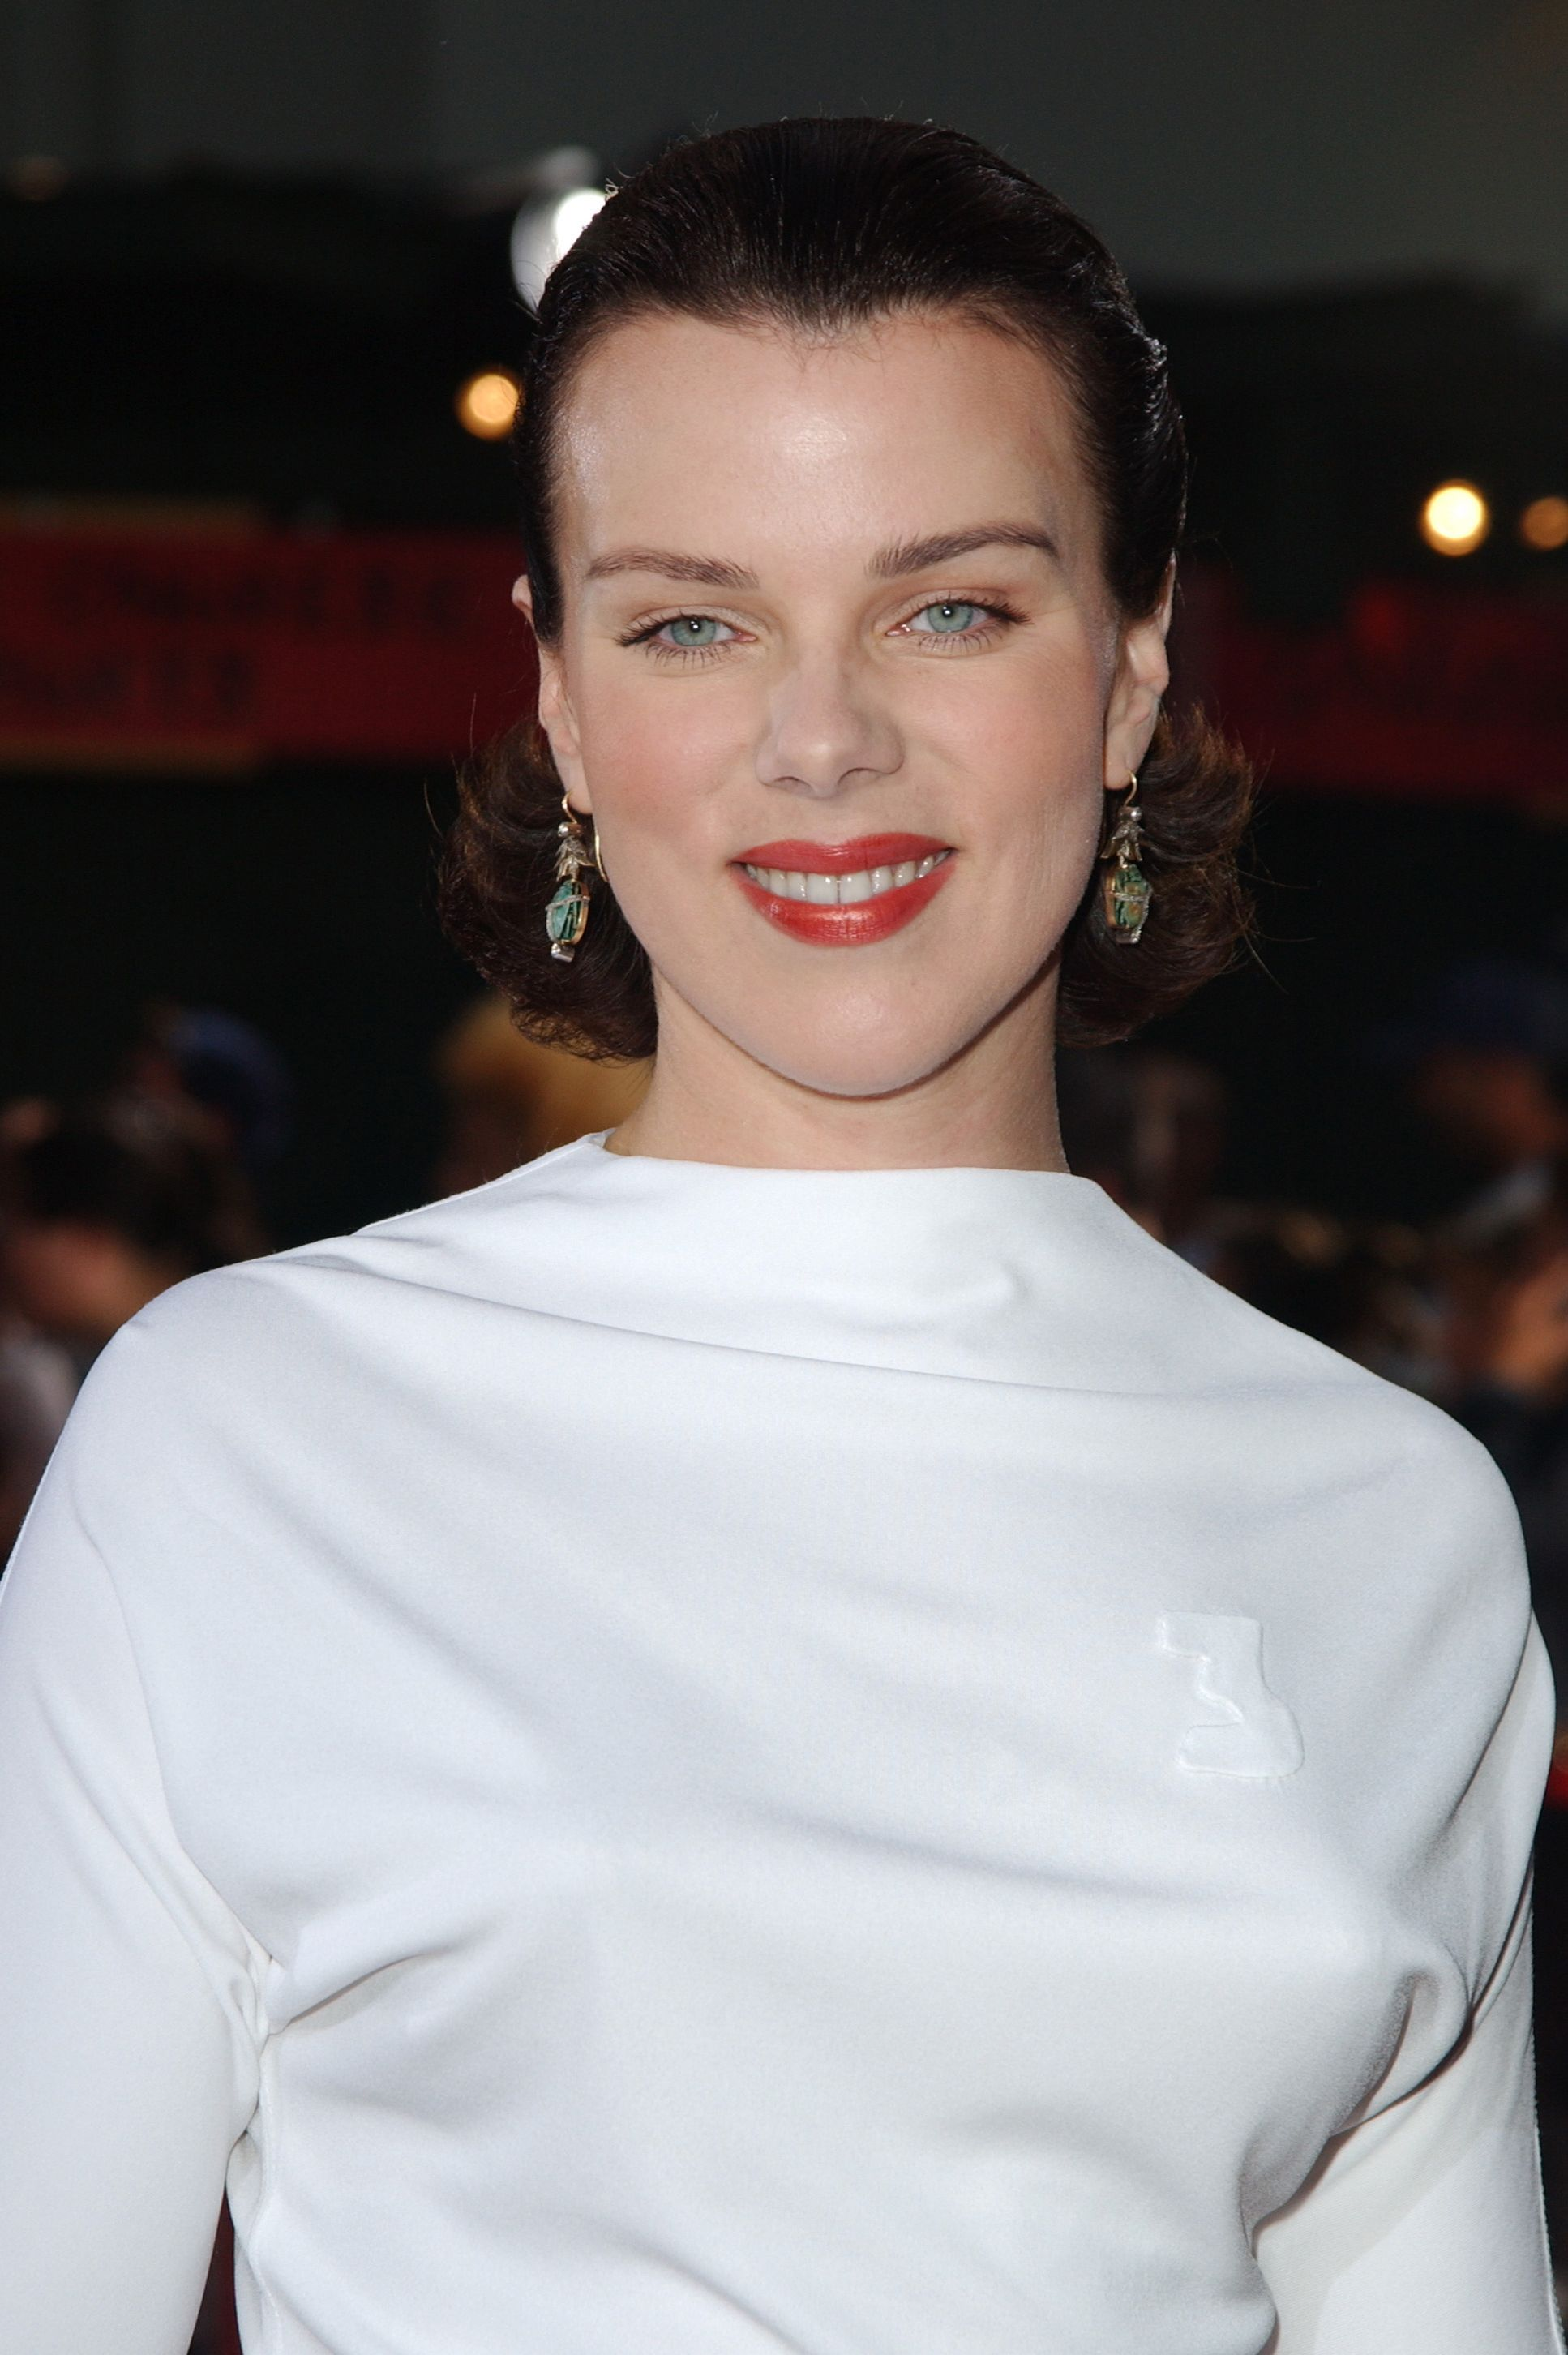 """Debi Mazar """"I have had Botox and I liked it when it was good,"""" Debi Mazar told Into The Gloss . """"It's hit or miss.... As an actress, I really need to have the facial movement and Botox takes it all away. But I actually metabolize the stuff really quickly, so it only lasts three weeks to a month. Why bother paying all that money?"""""""